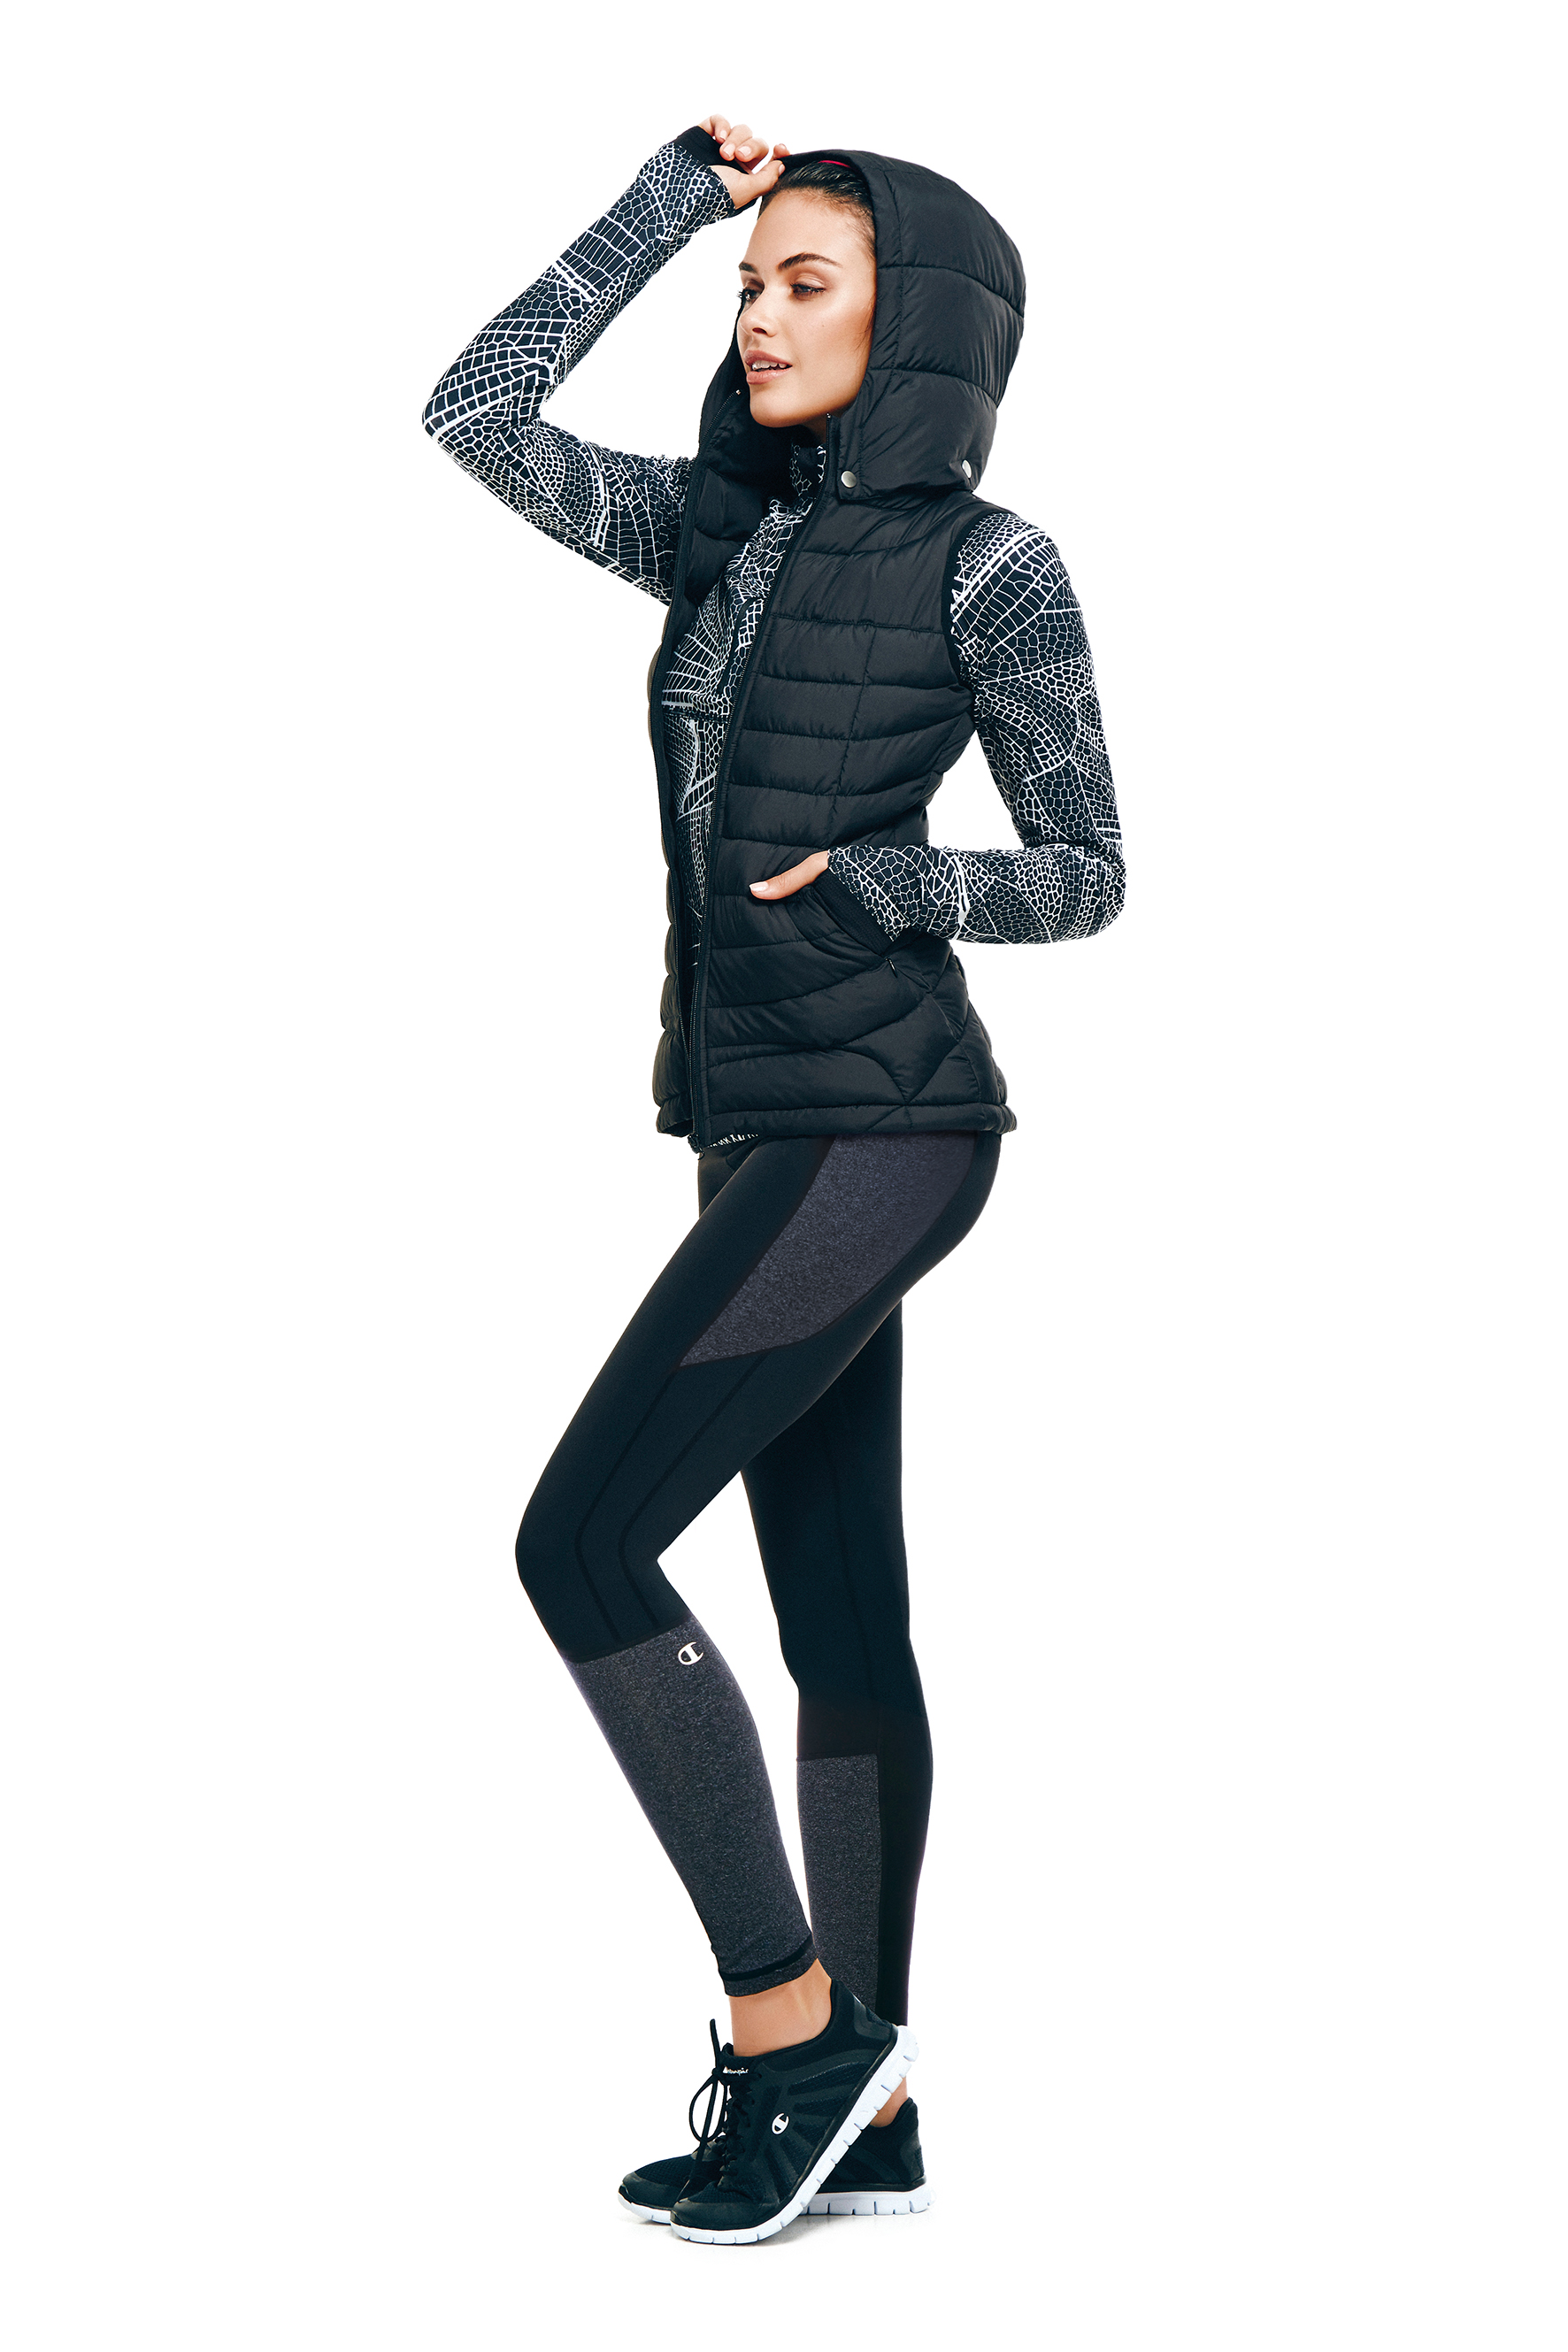 Champion Powertrain Puffer Vest, Champion The Trainer 1/4 Zip, and Champion Go To Tight